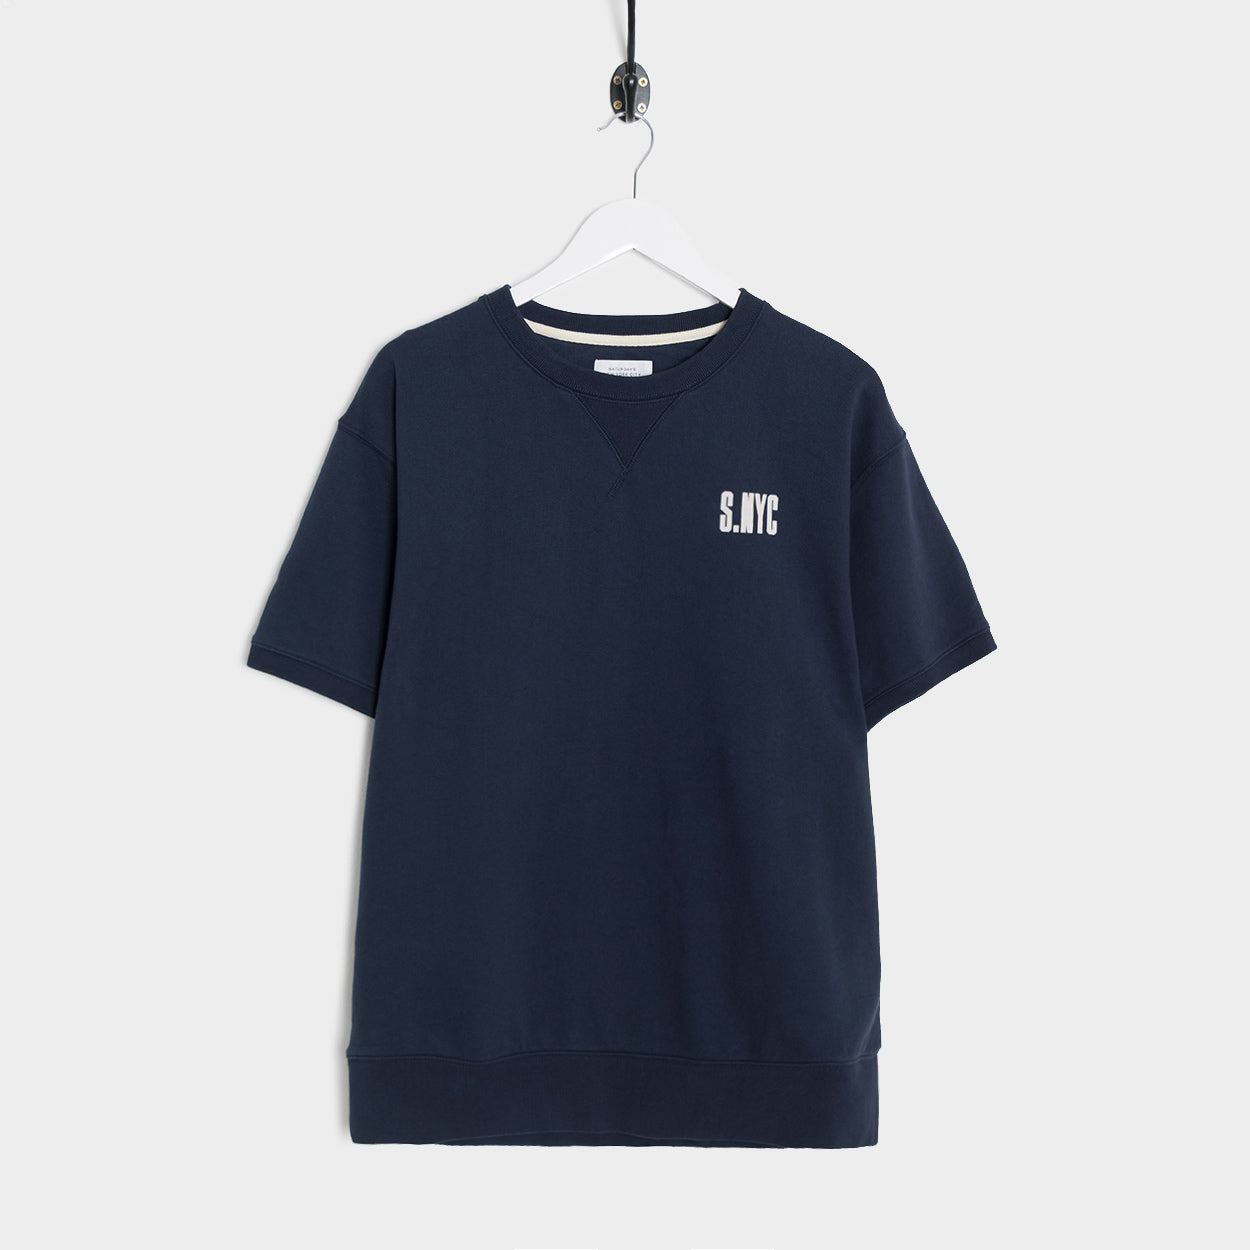 Saturdays NYC Elliot S.NYC Short Sleeve Sweatshirt - Midnight